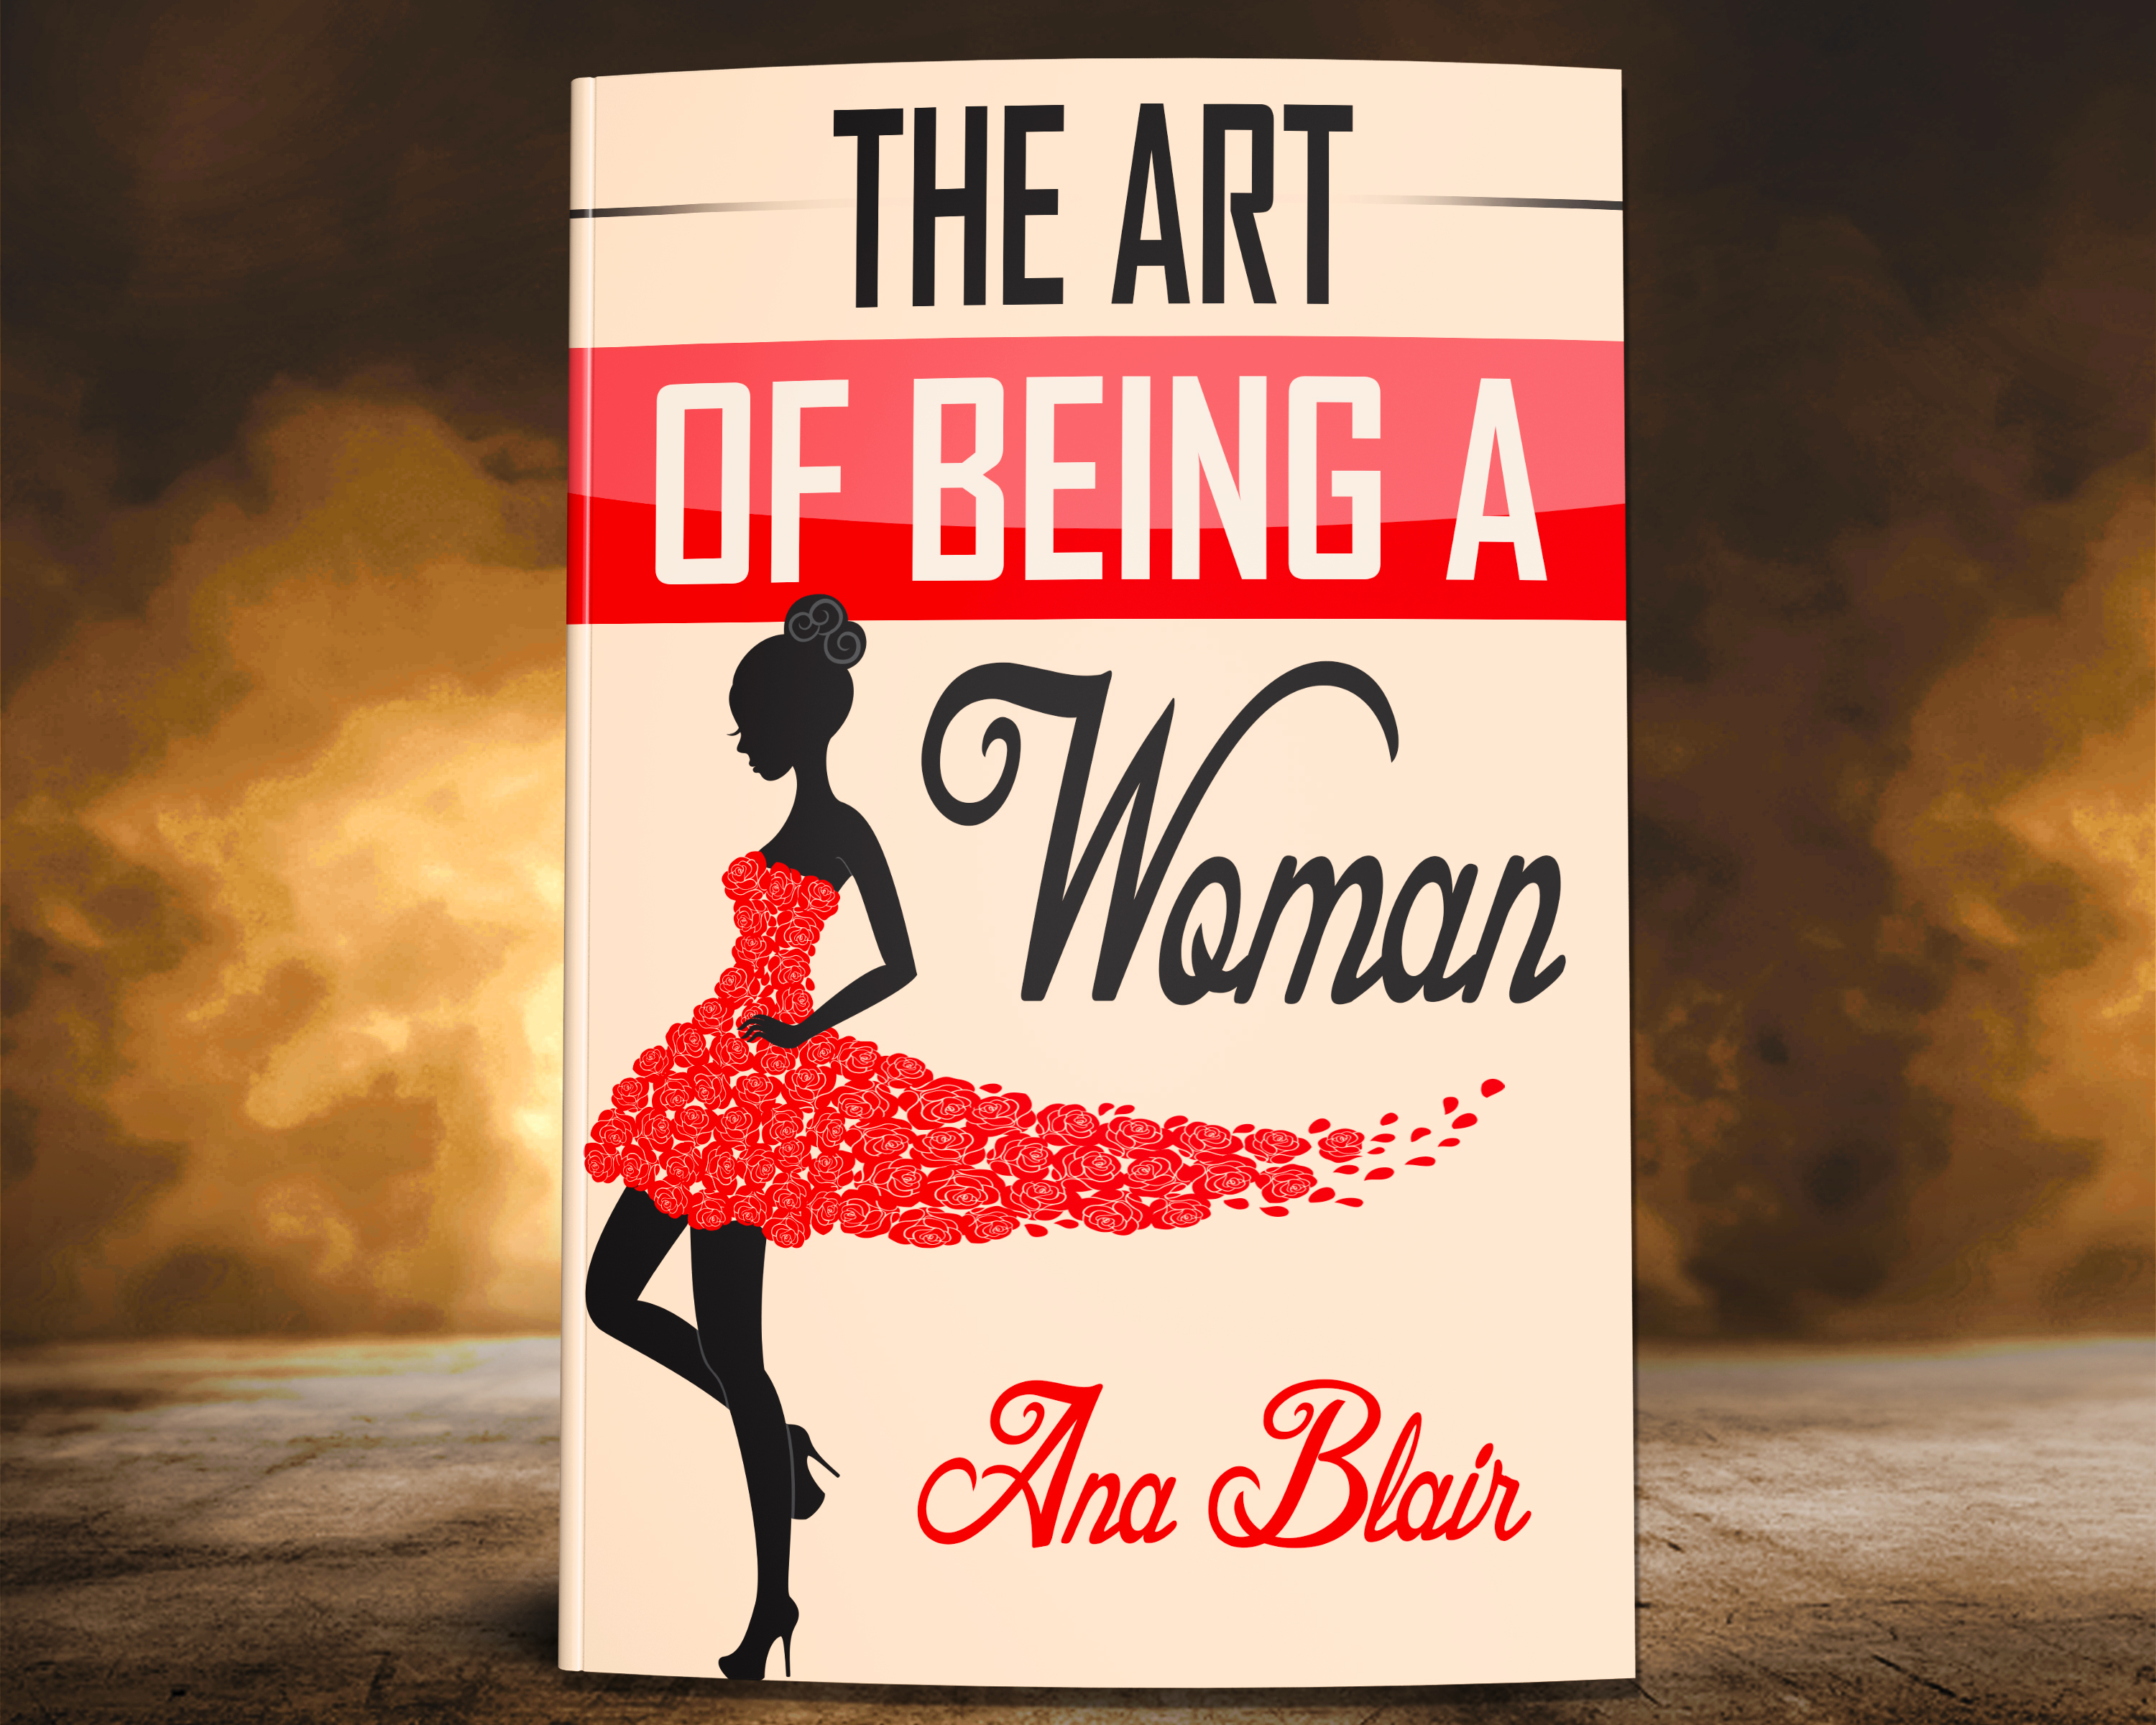 The Art Of Being A Woman